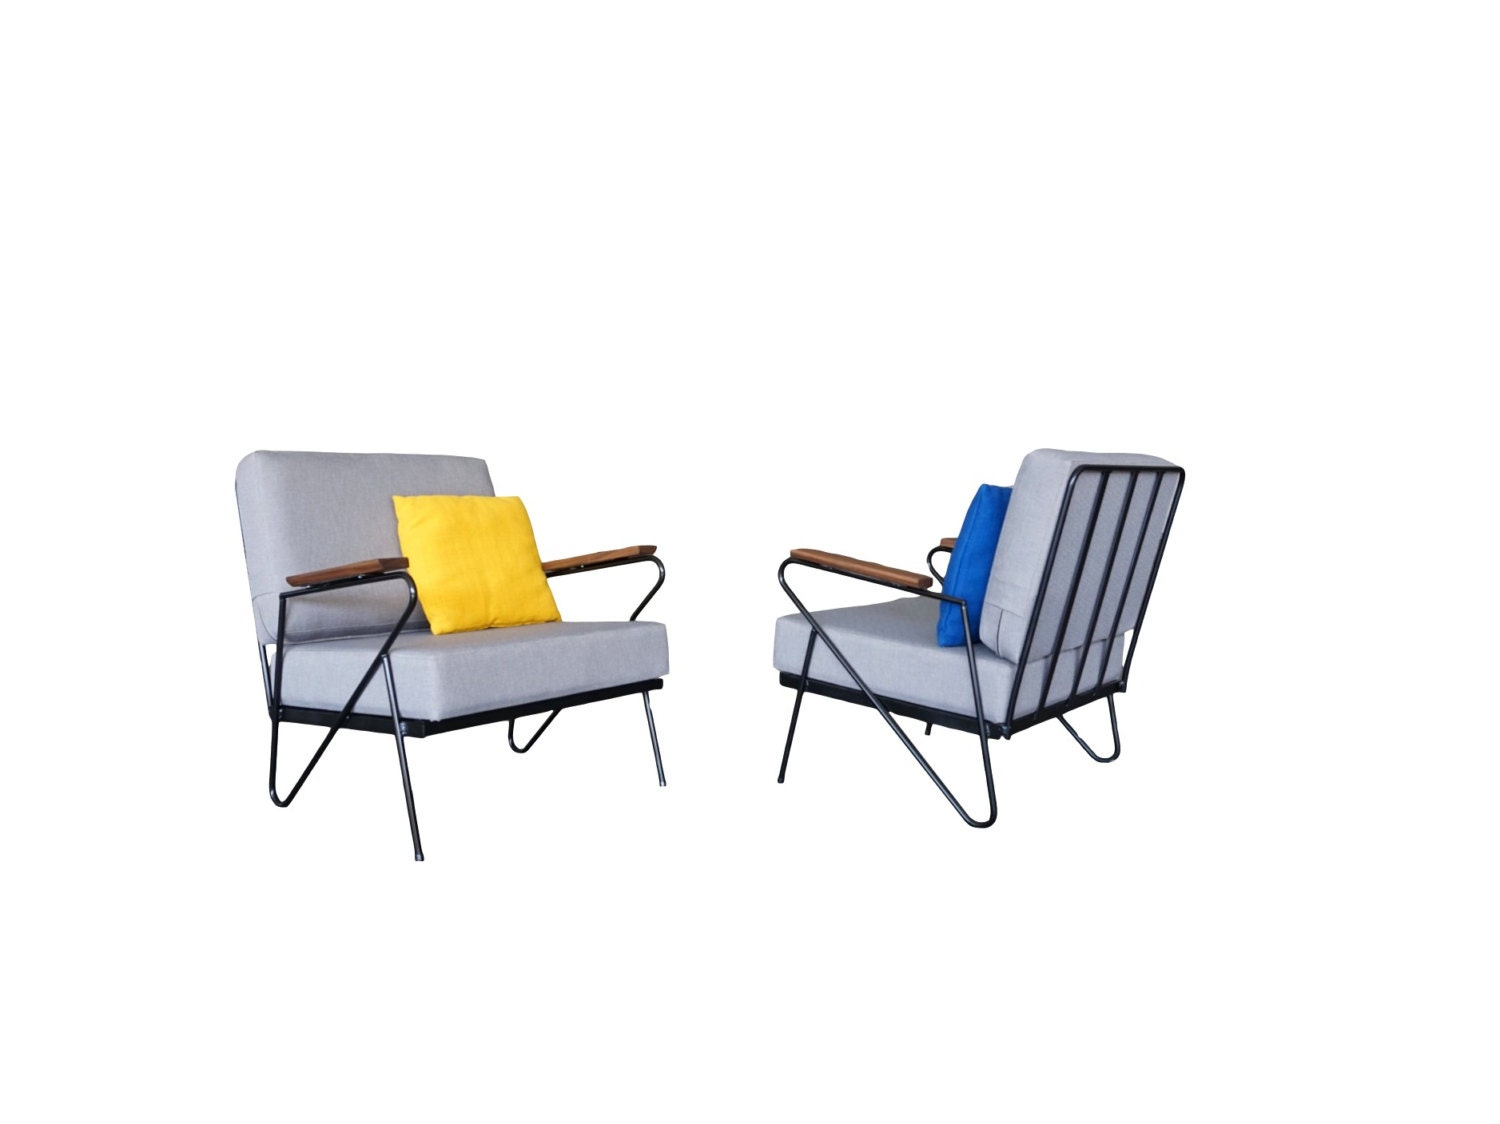 Iron Modernist Lounge Chairs